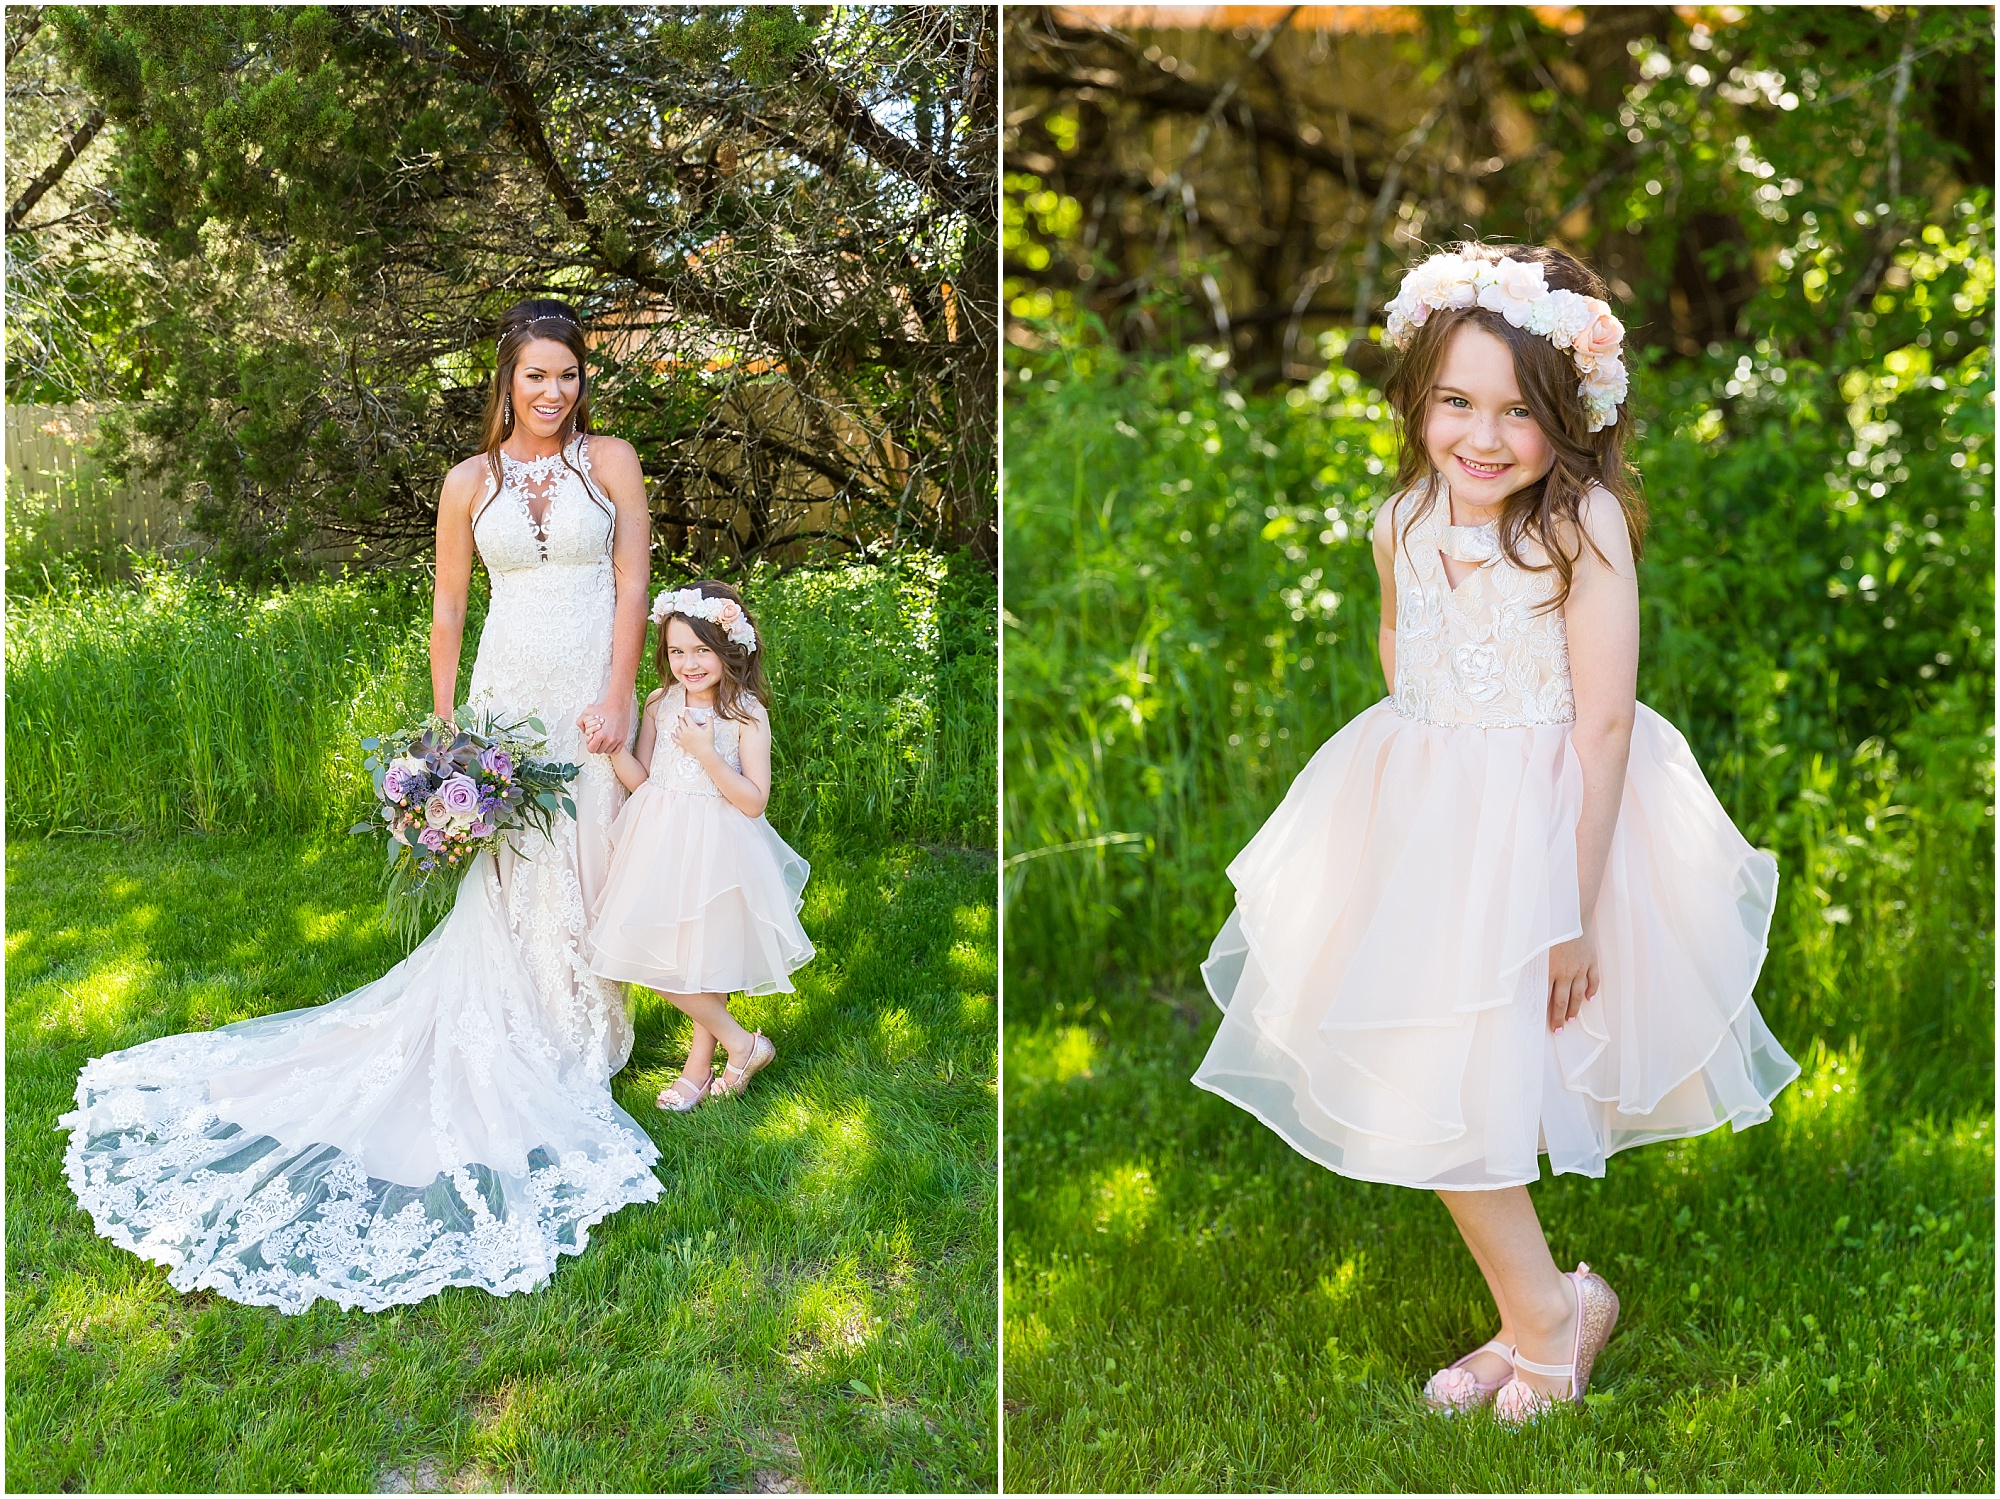 A bride poses with her flower girl daughter before her bohemian garden wedding ceremony in Waco, Texas | Jason & Melaina Photography | www.jasonandmelaina.com